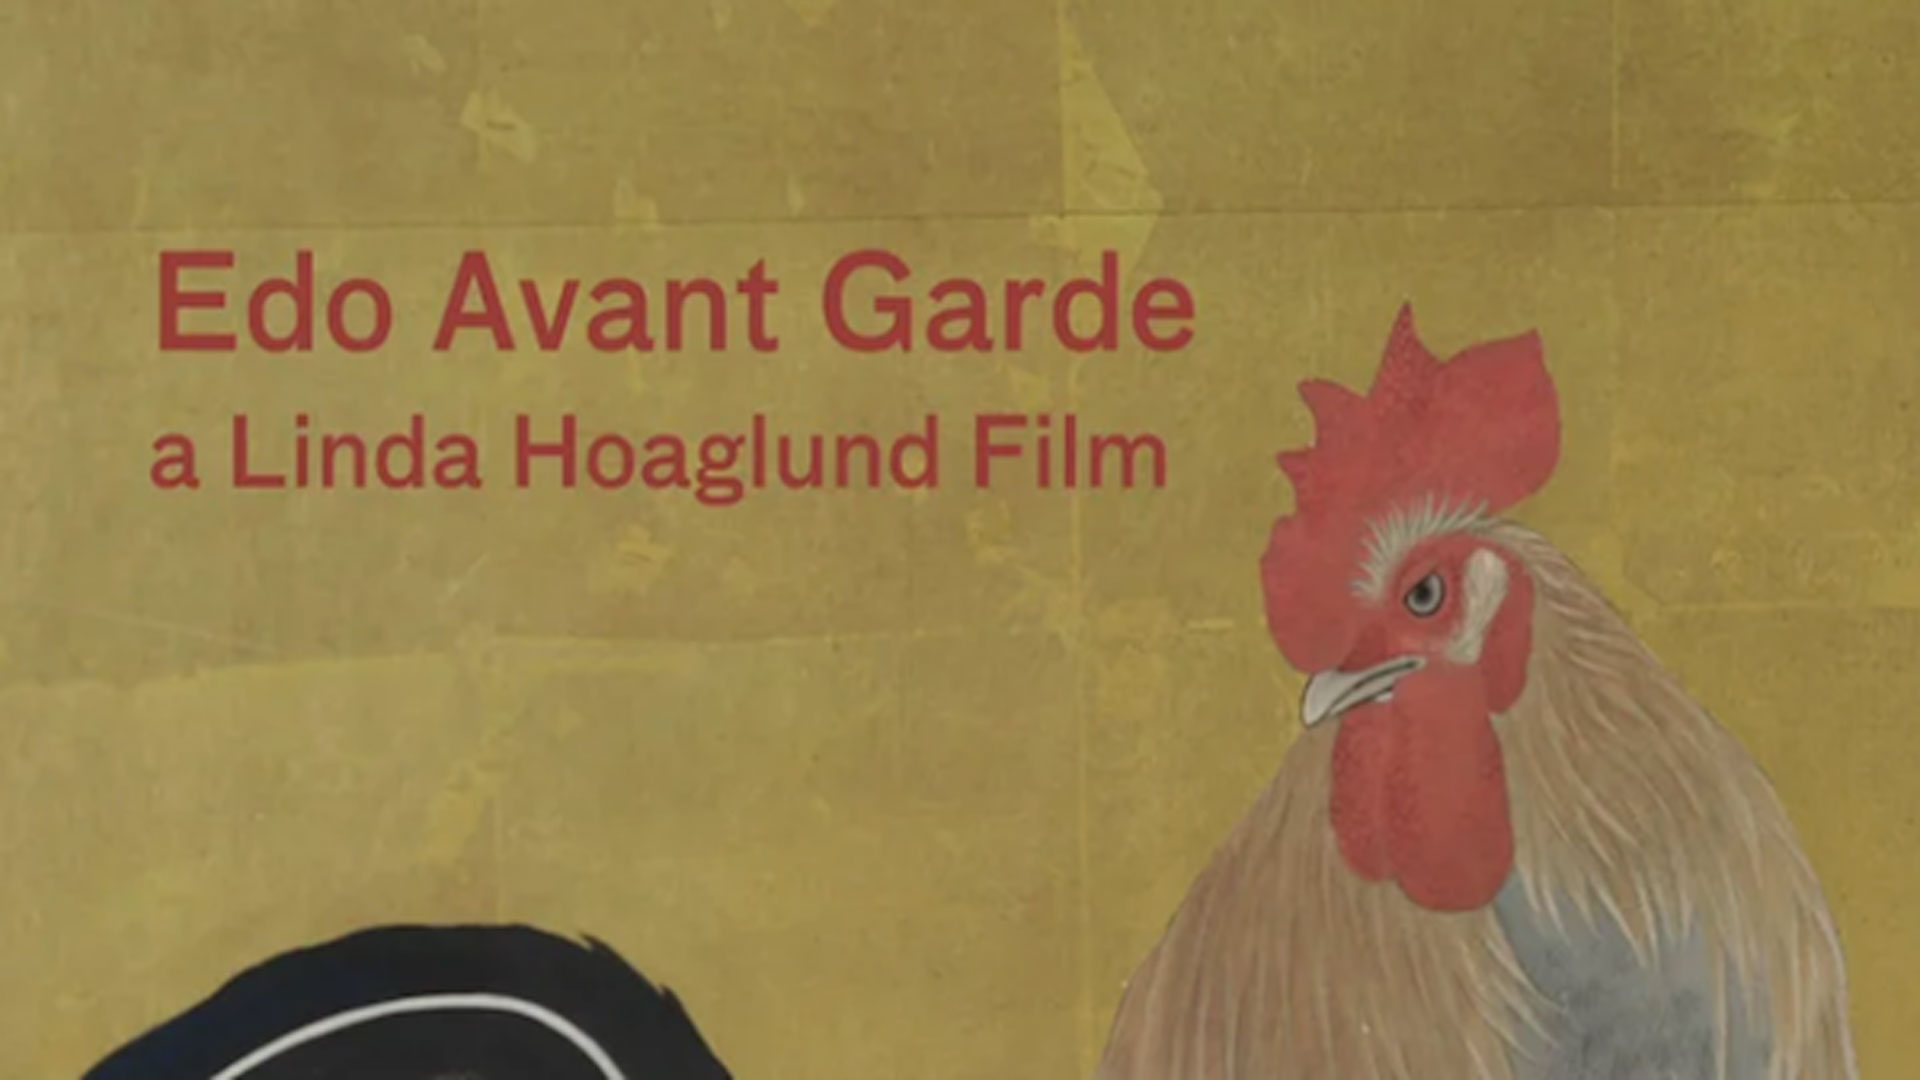 a still from the film Edo Avant Garde showing a rooster and the name of the film and filmermaker